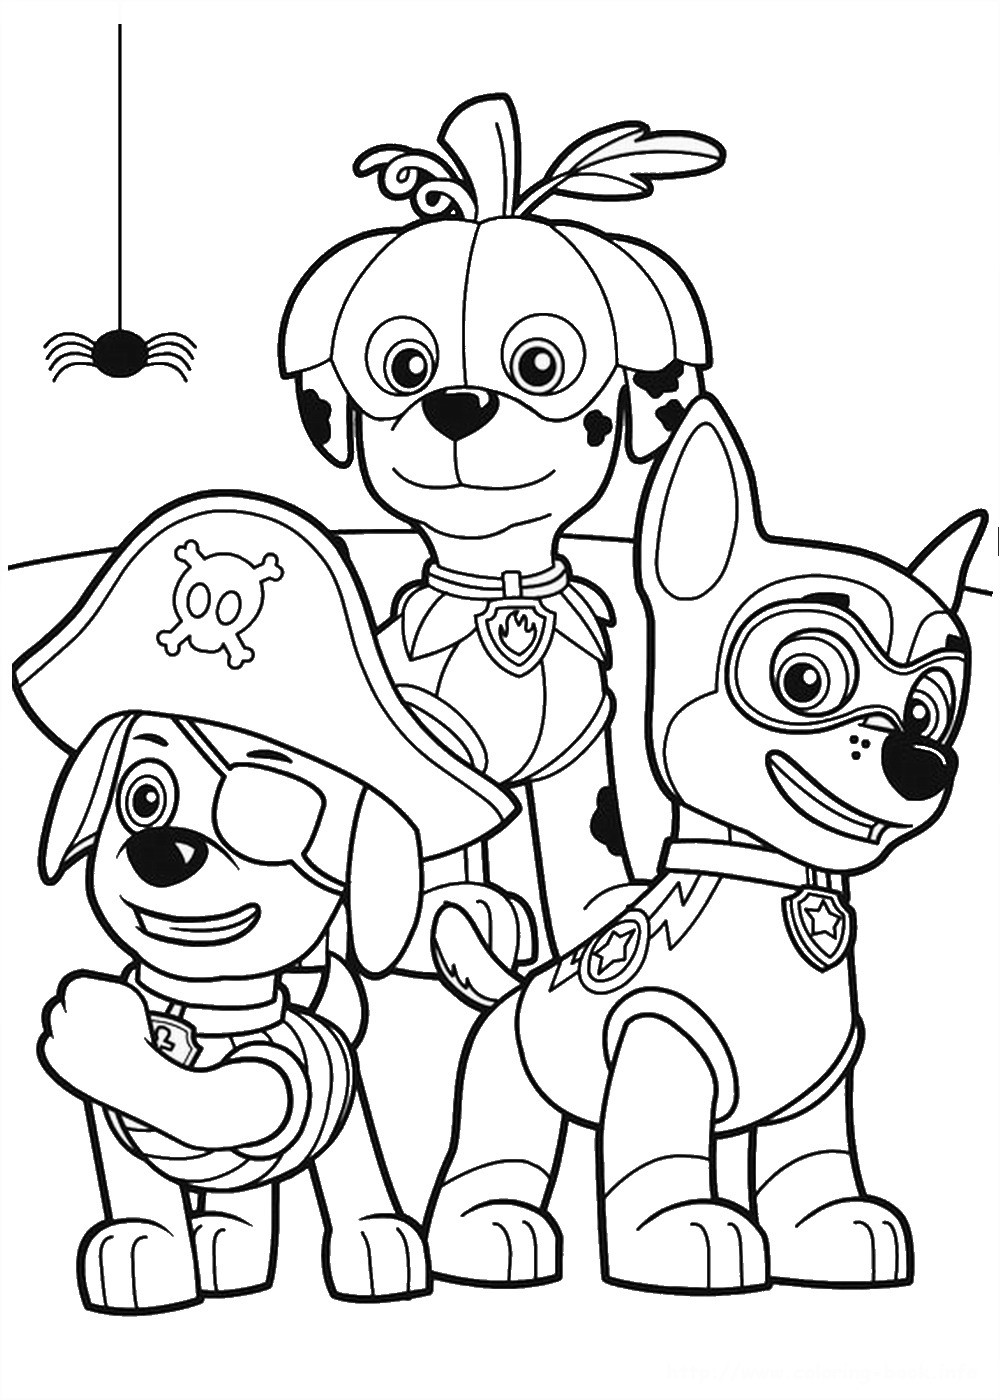 Nickelodeon Coloring Pages  Free Nick Jr Paw Patrol Coloring Pages